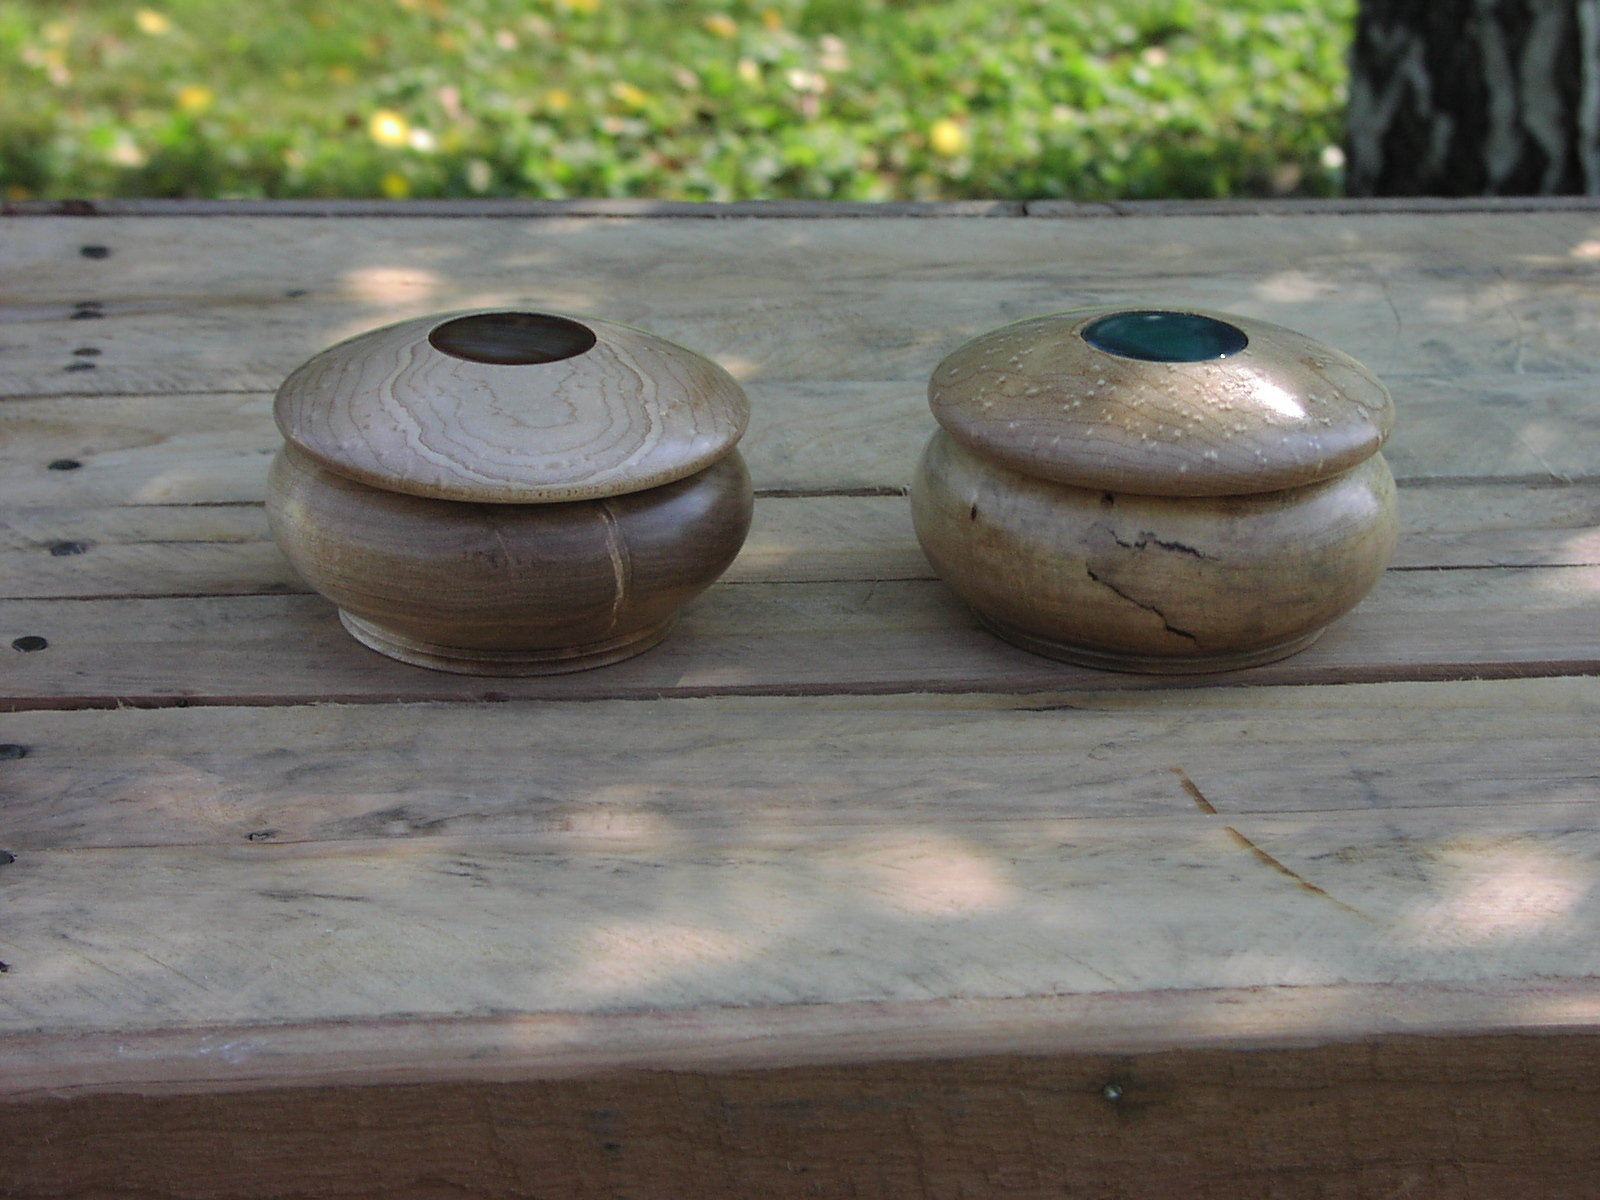 Spalted Maple Boxes with Agate inset in lid. Actual size=240 pixels wide